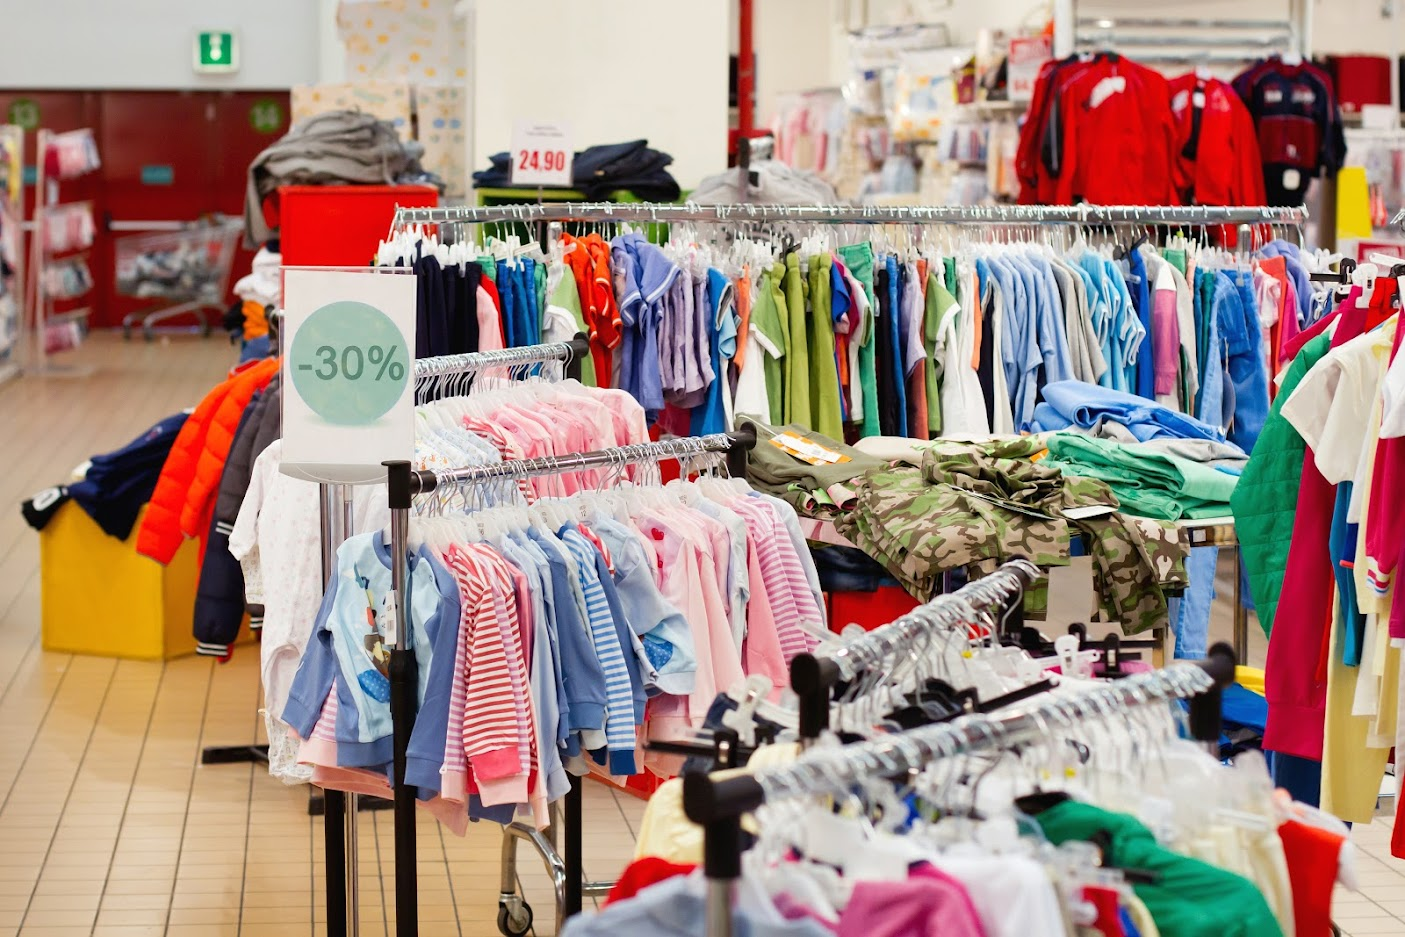 4 Ways to Use Storage Units for Summer Clearance Purchases